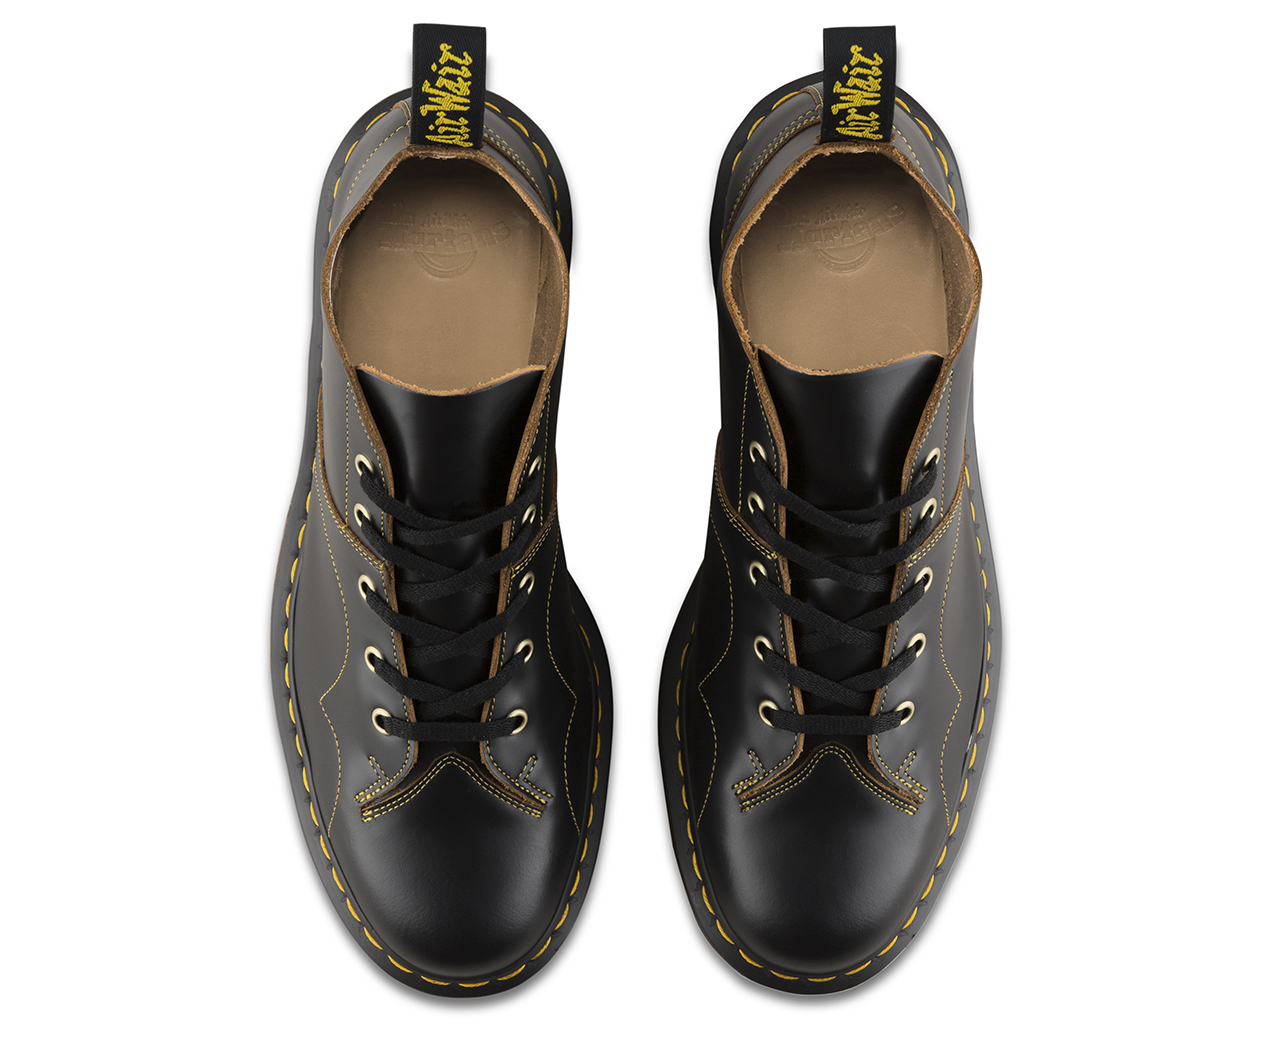 Church Vintage Smooth Aw18 Dr Martens Official Site Cut Engineer Shoes Safety Boots Iron Suede Leather Soft Brown